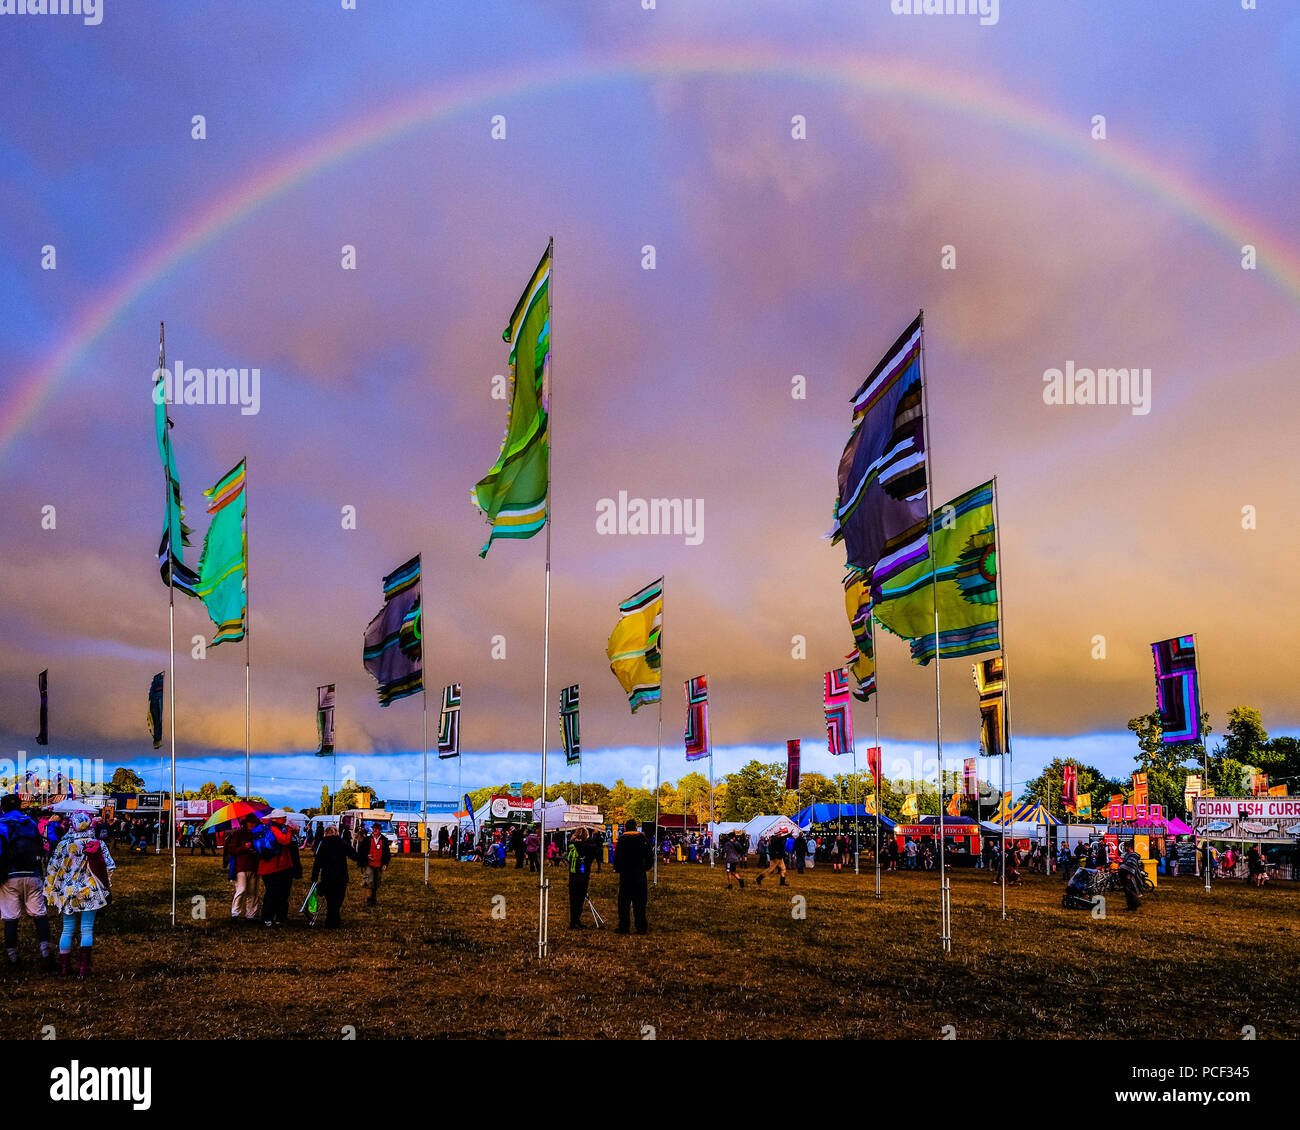 A Rainbow appears over WOMAD on Sunday 29 July 2018 held at Charlton Park, Wiltshire . Pictured: Following a day of rain and sun, a full rainbow appears over the festival at the close of the day. - Stock Image